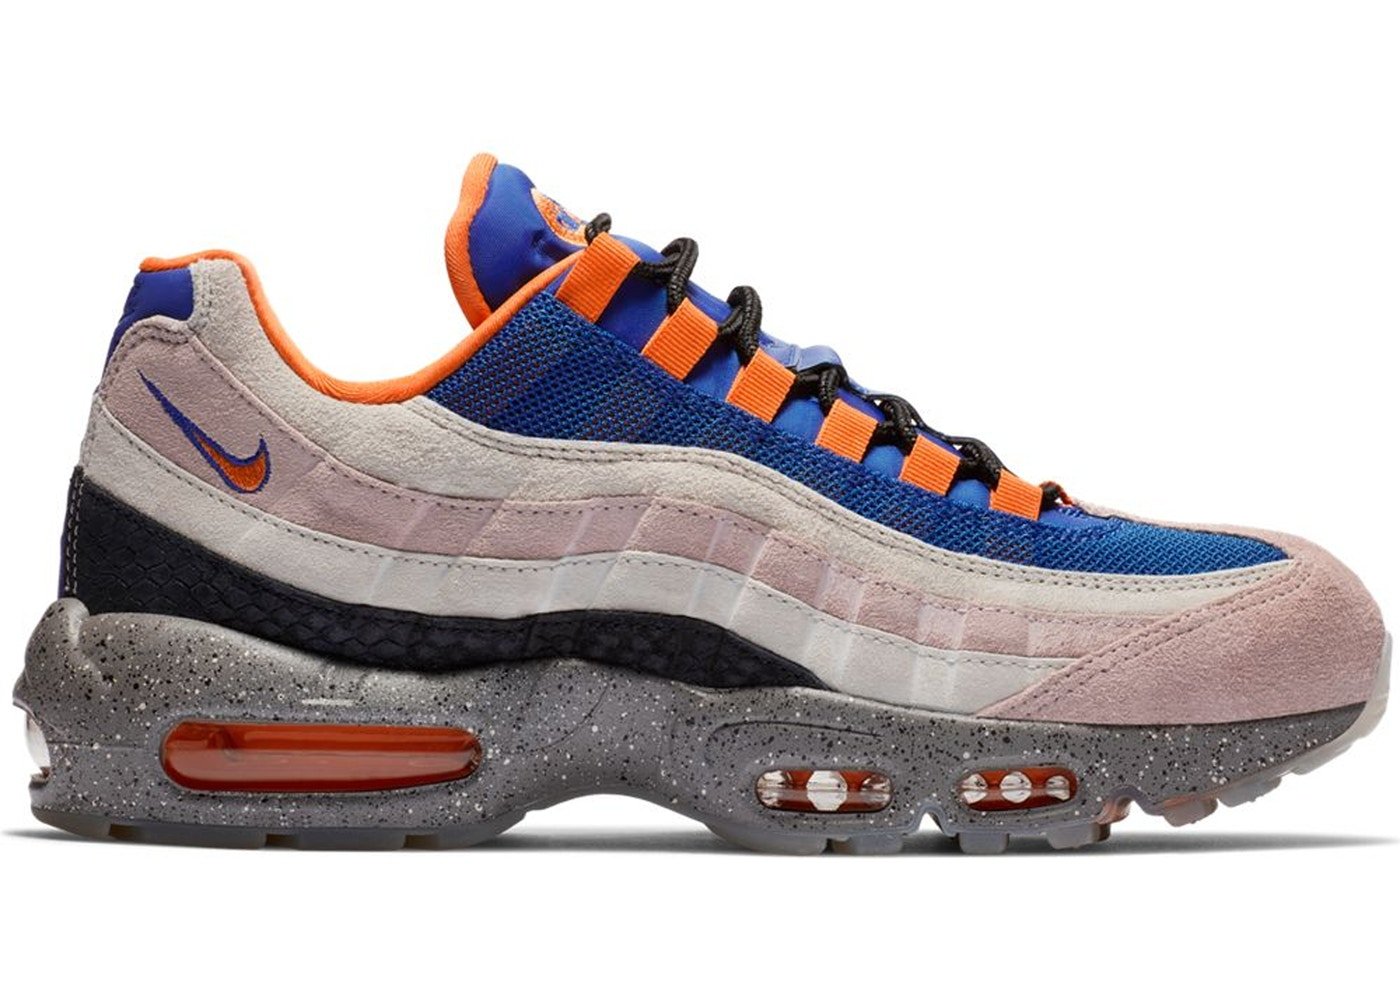 Air Max 95 King of the Mountain - AV7014-600 f01af283f